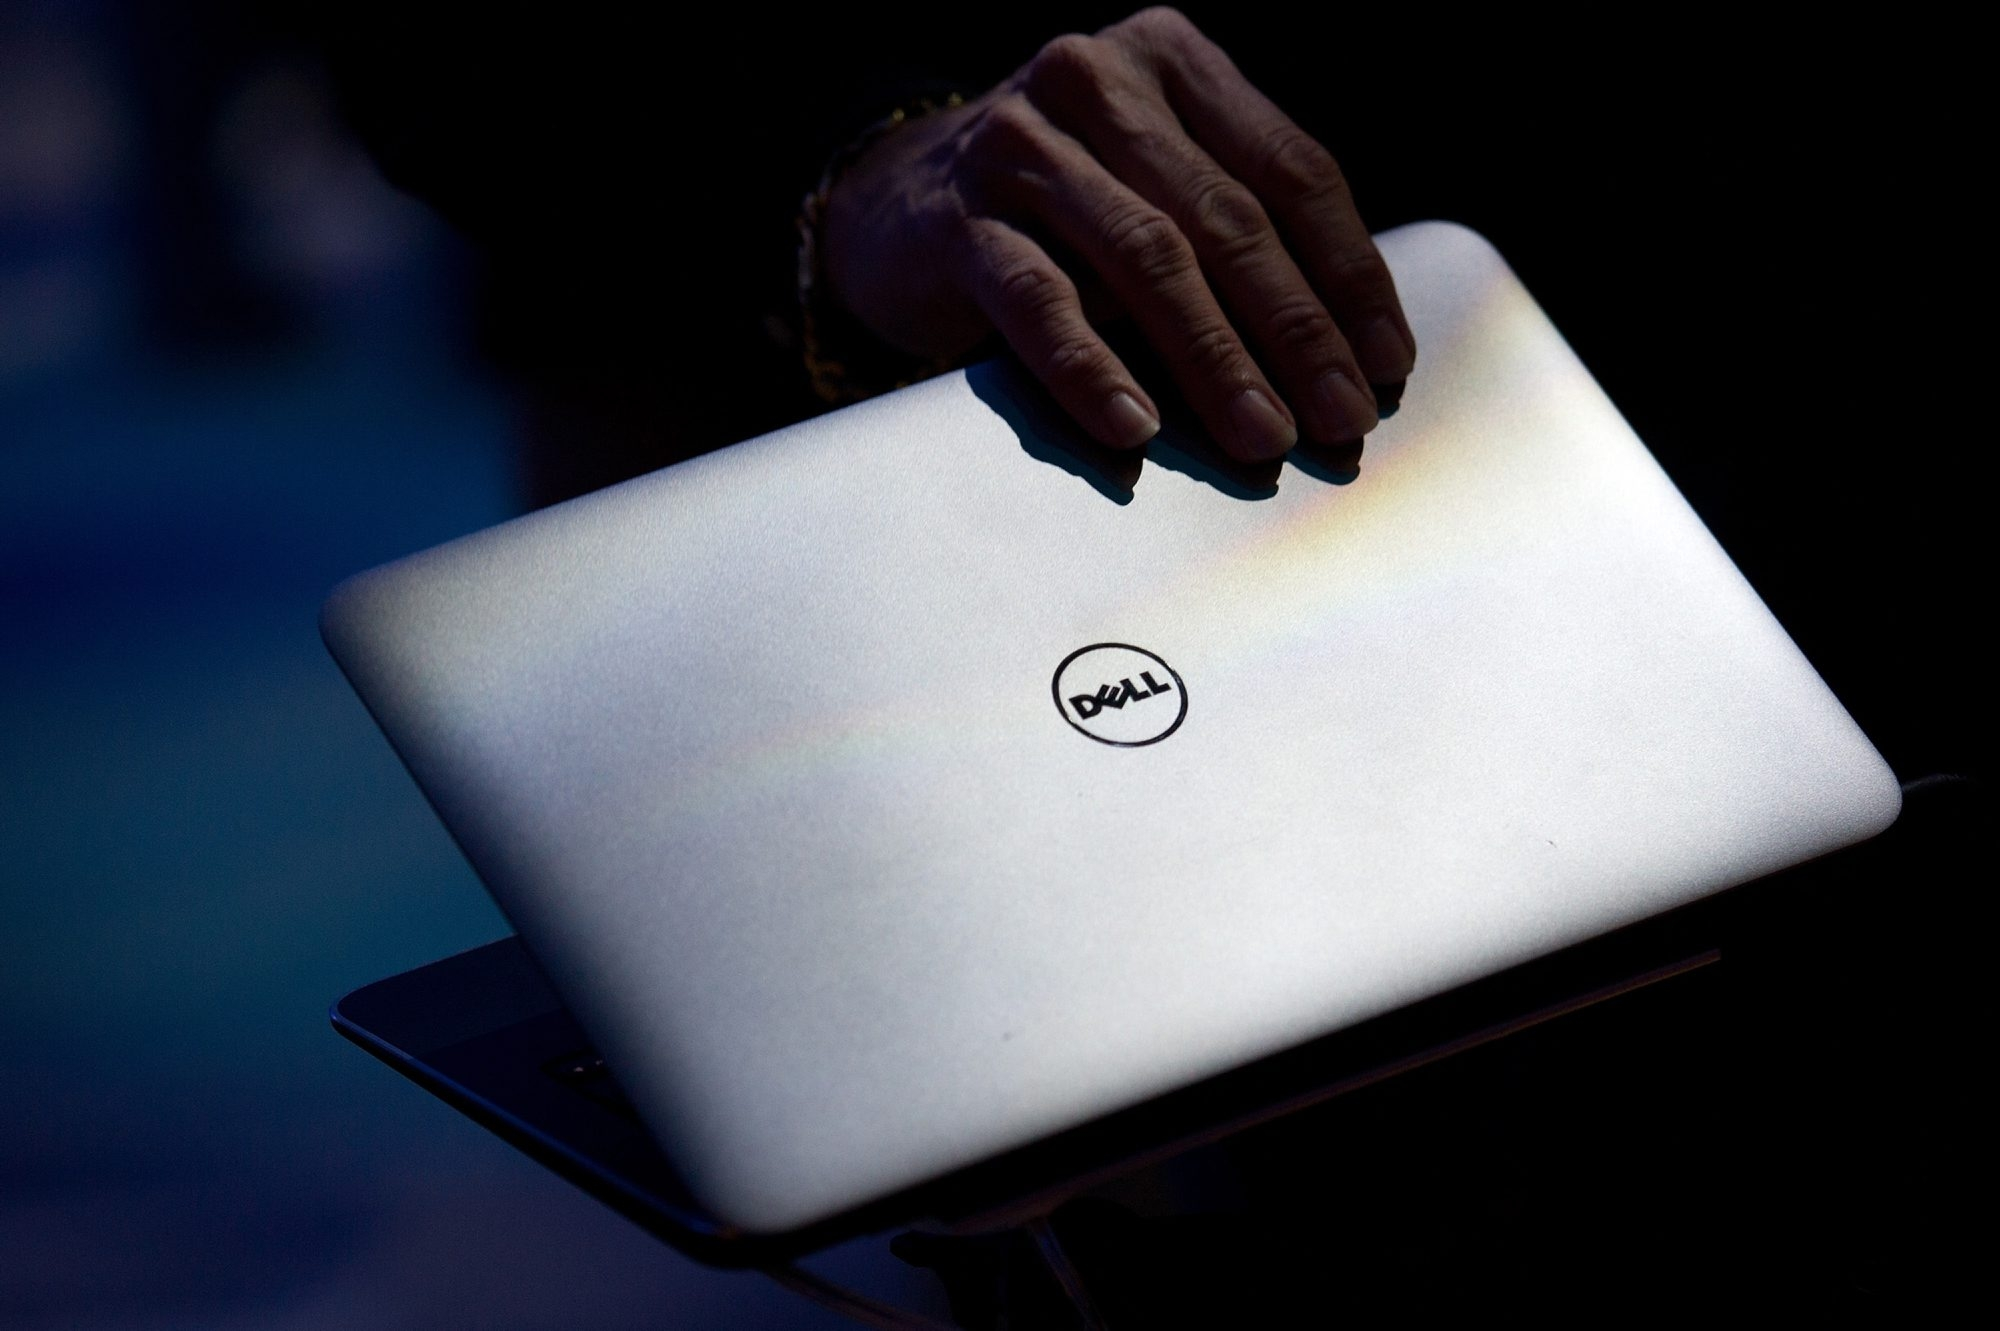 The Dell Latitude 6430u laptop is emitting an odor like cat urine that is related to the manufacturing process and has been remedied, the company said.